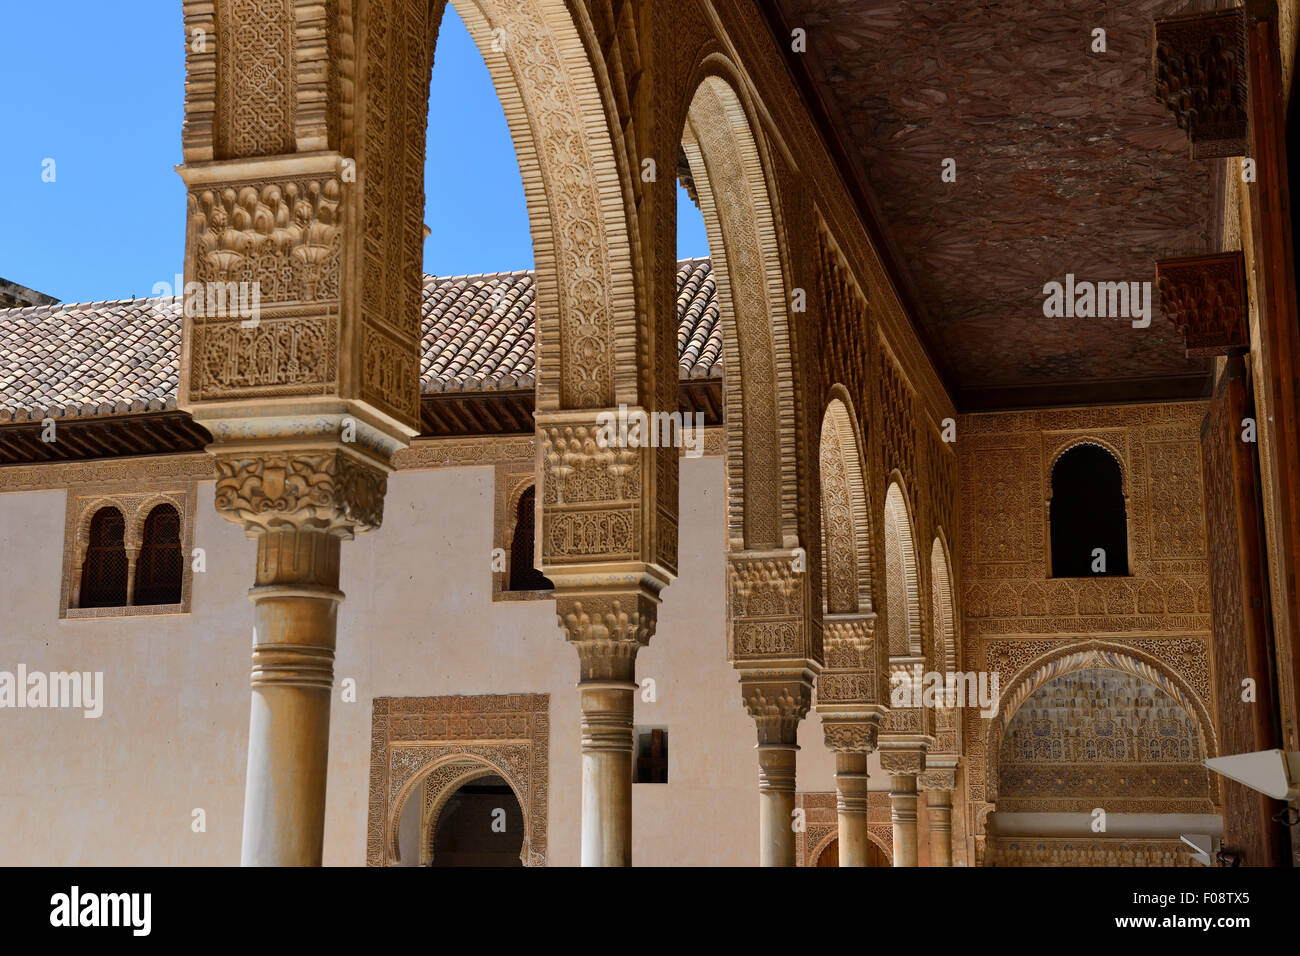 Patio de los Arrayanes in Palacio de Comares, Alhambra Palace Stock Photo, Ro...